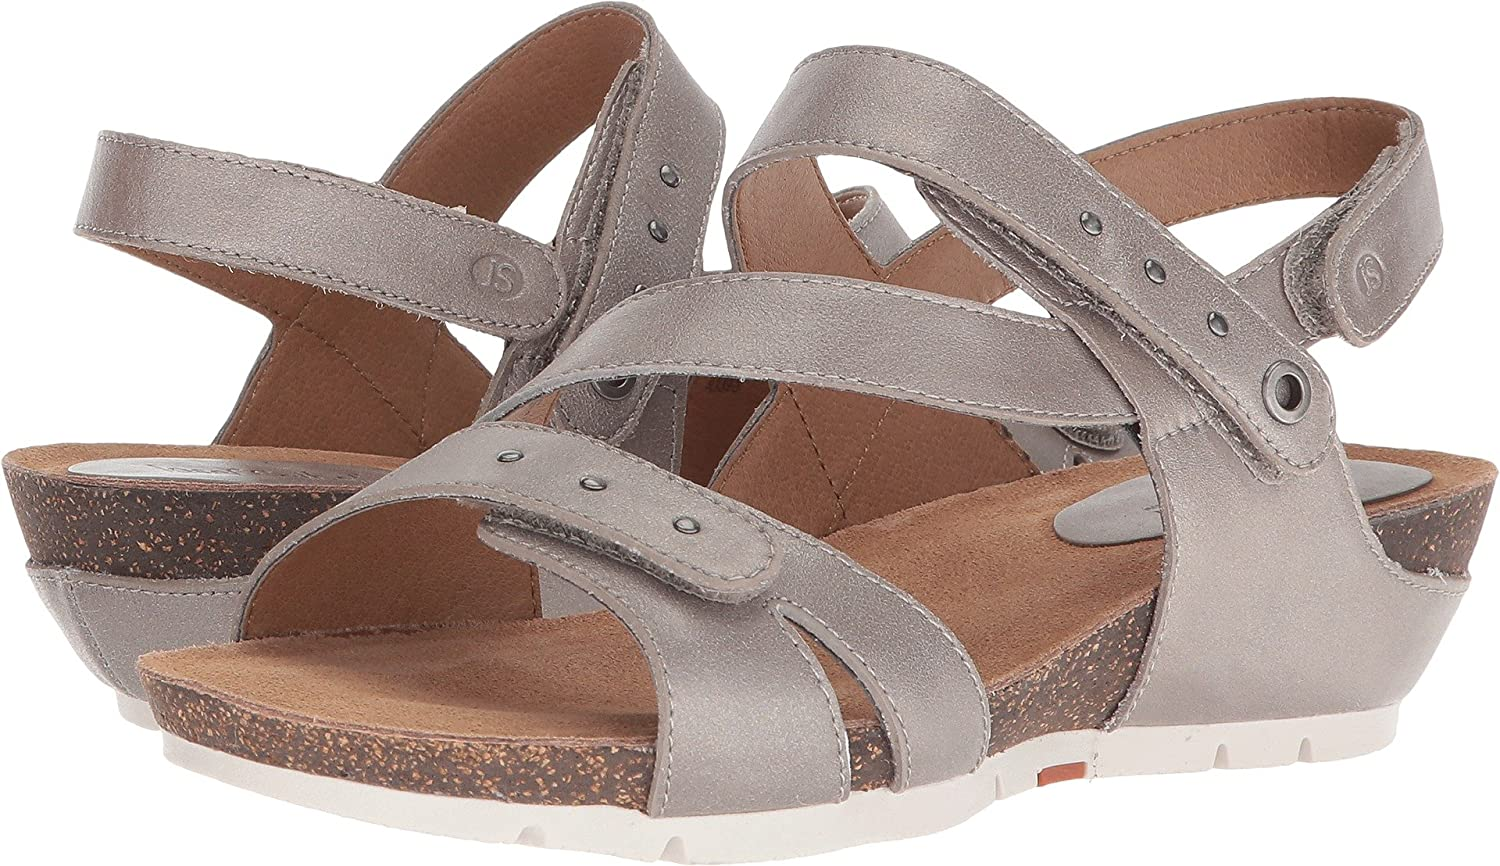 Josef Seibel Women's, Hailey 33 Wedge Sandals B079LHXRMS 42 M EU|Platin Metallic